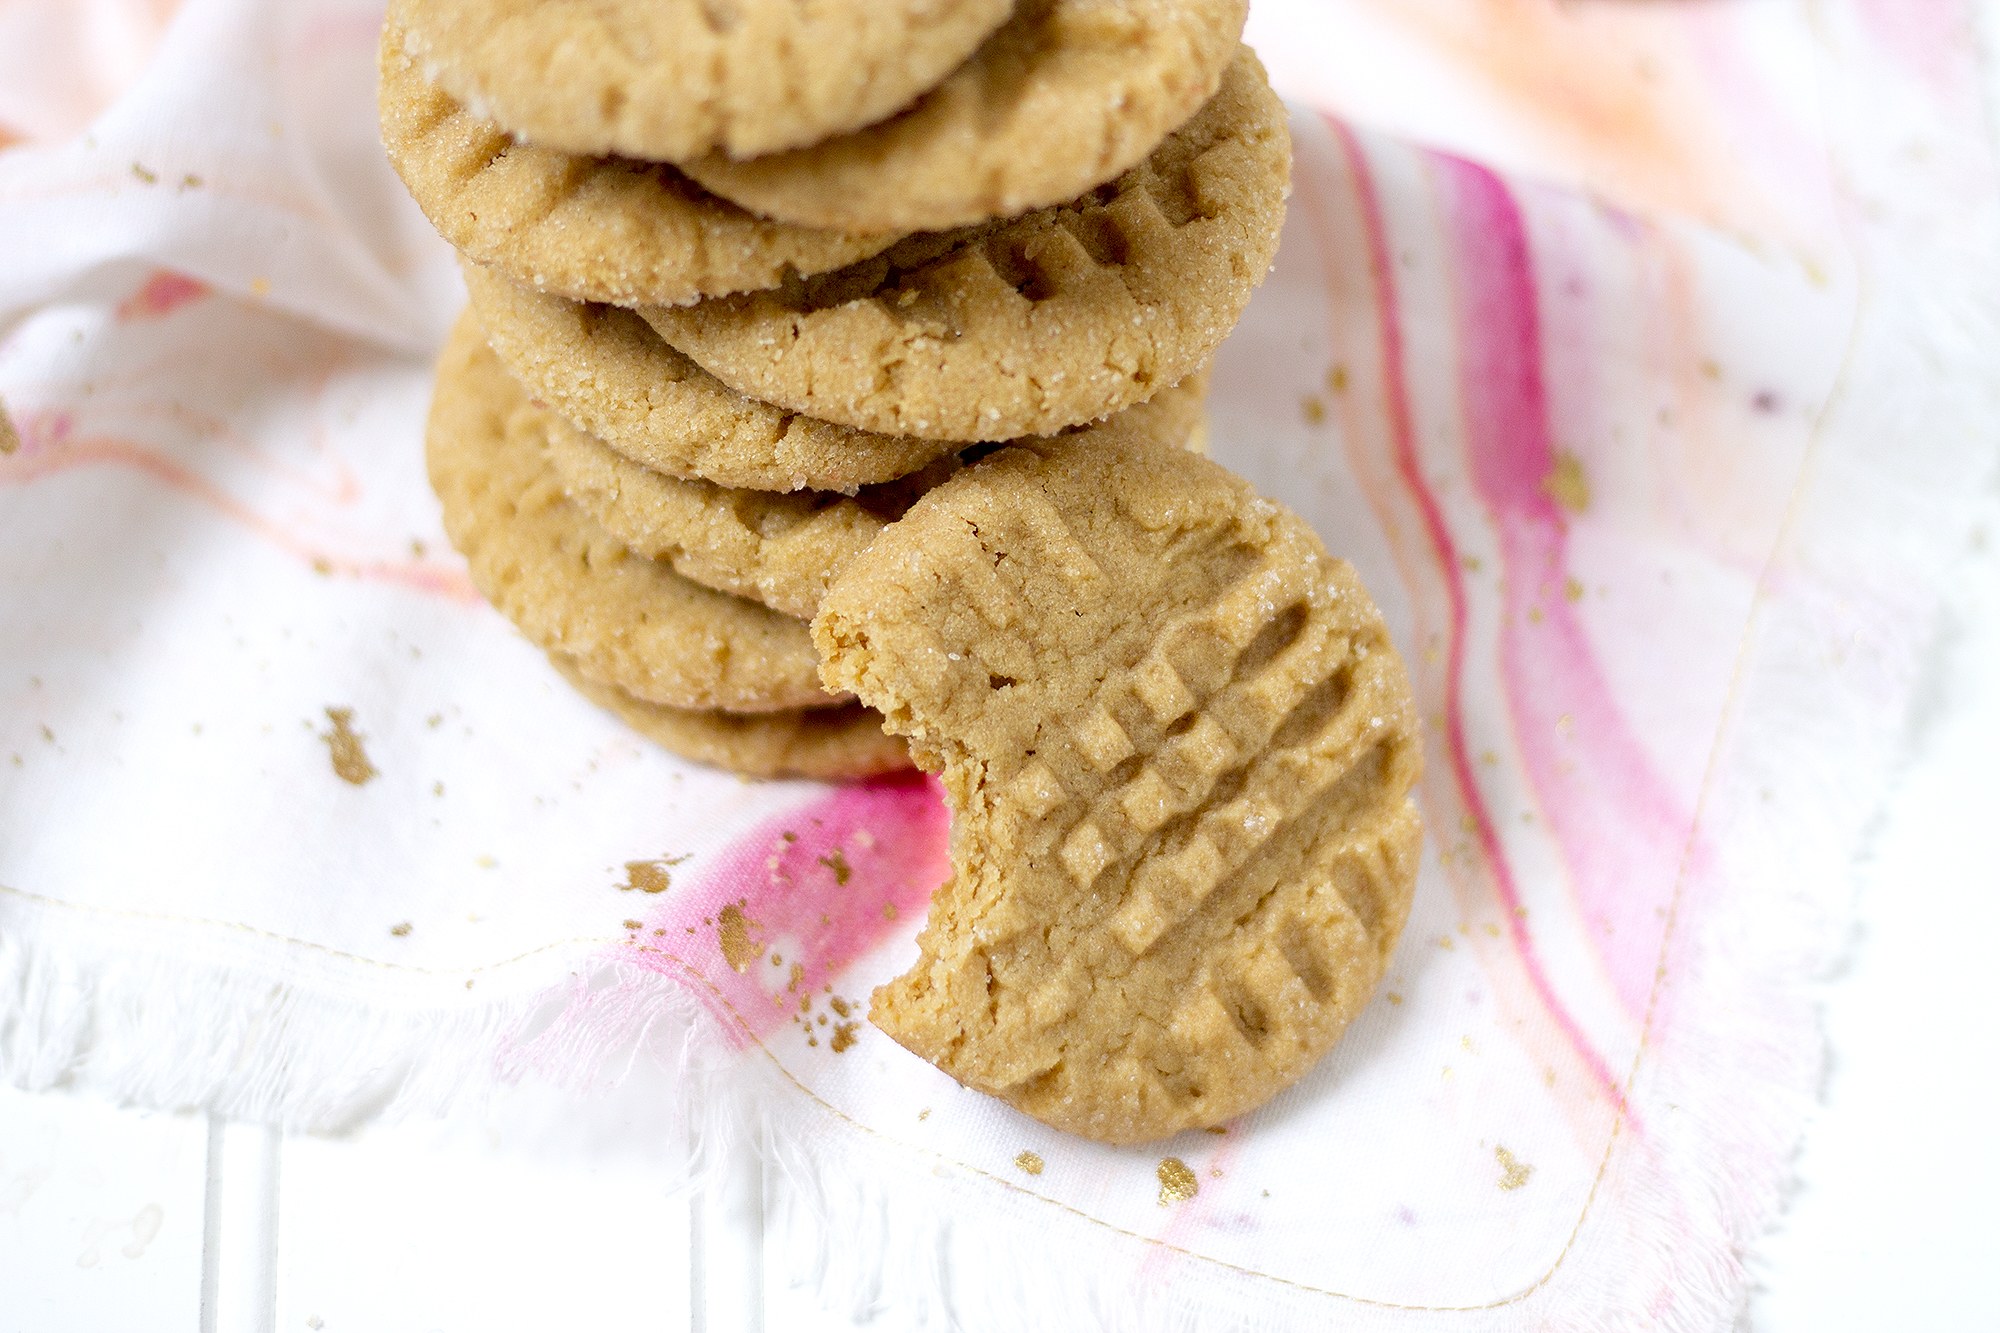 Classic Peanut Butter Cookies but with a made a little better with extra salt. Get the recipe: unusuallylovely.com